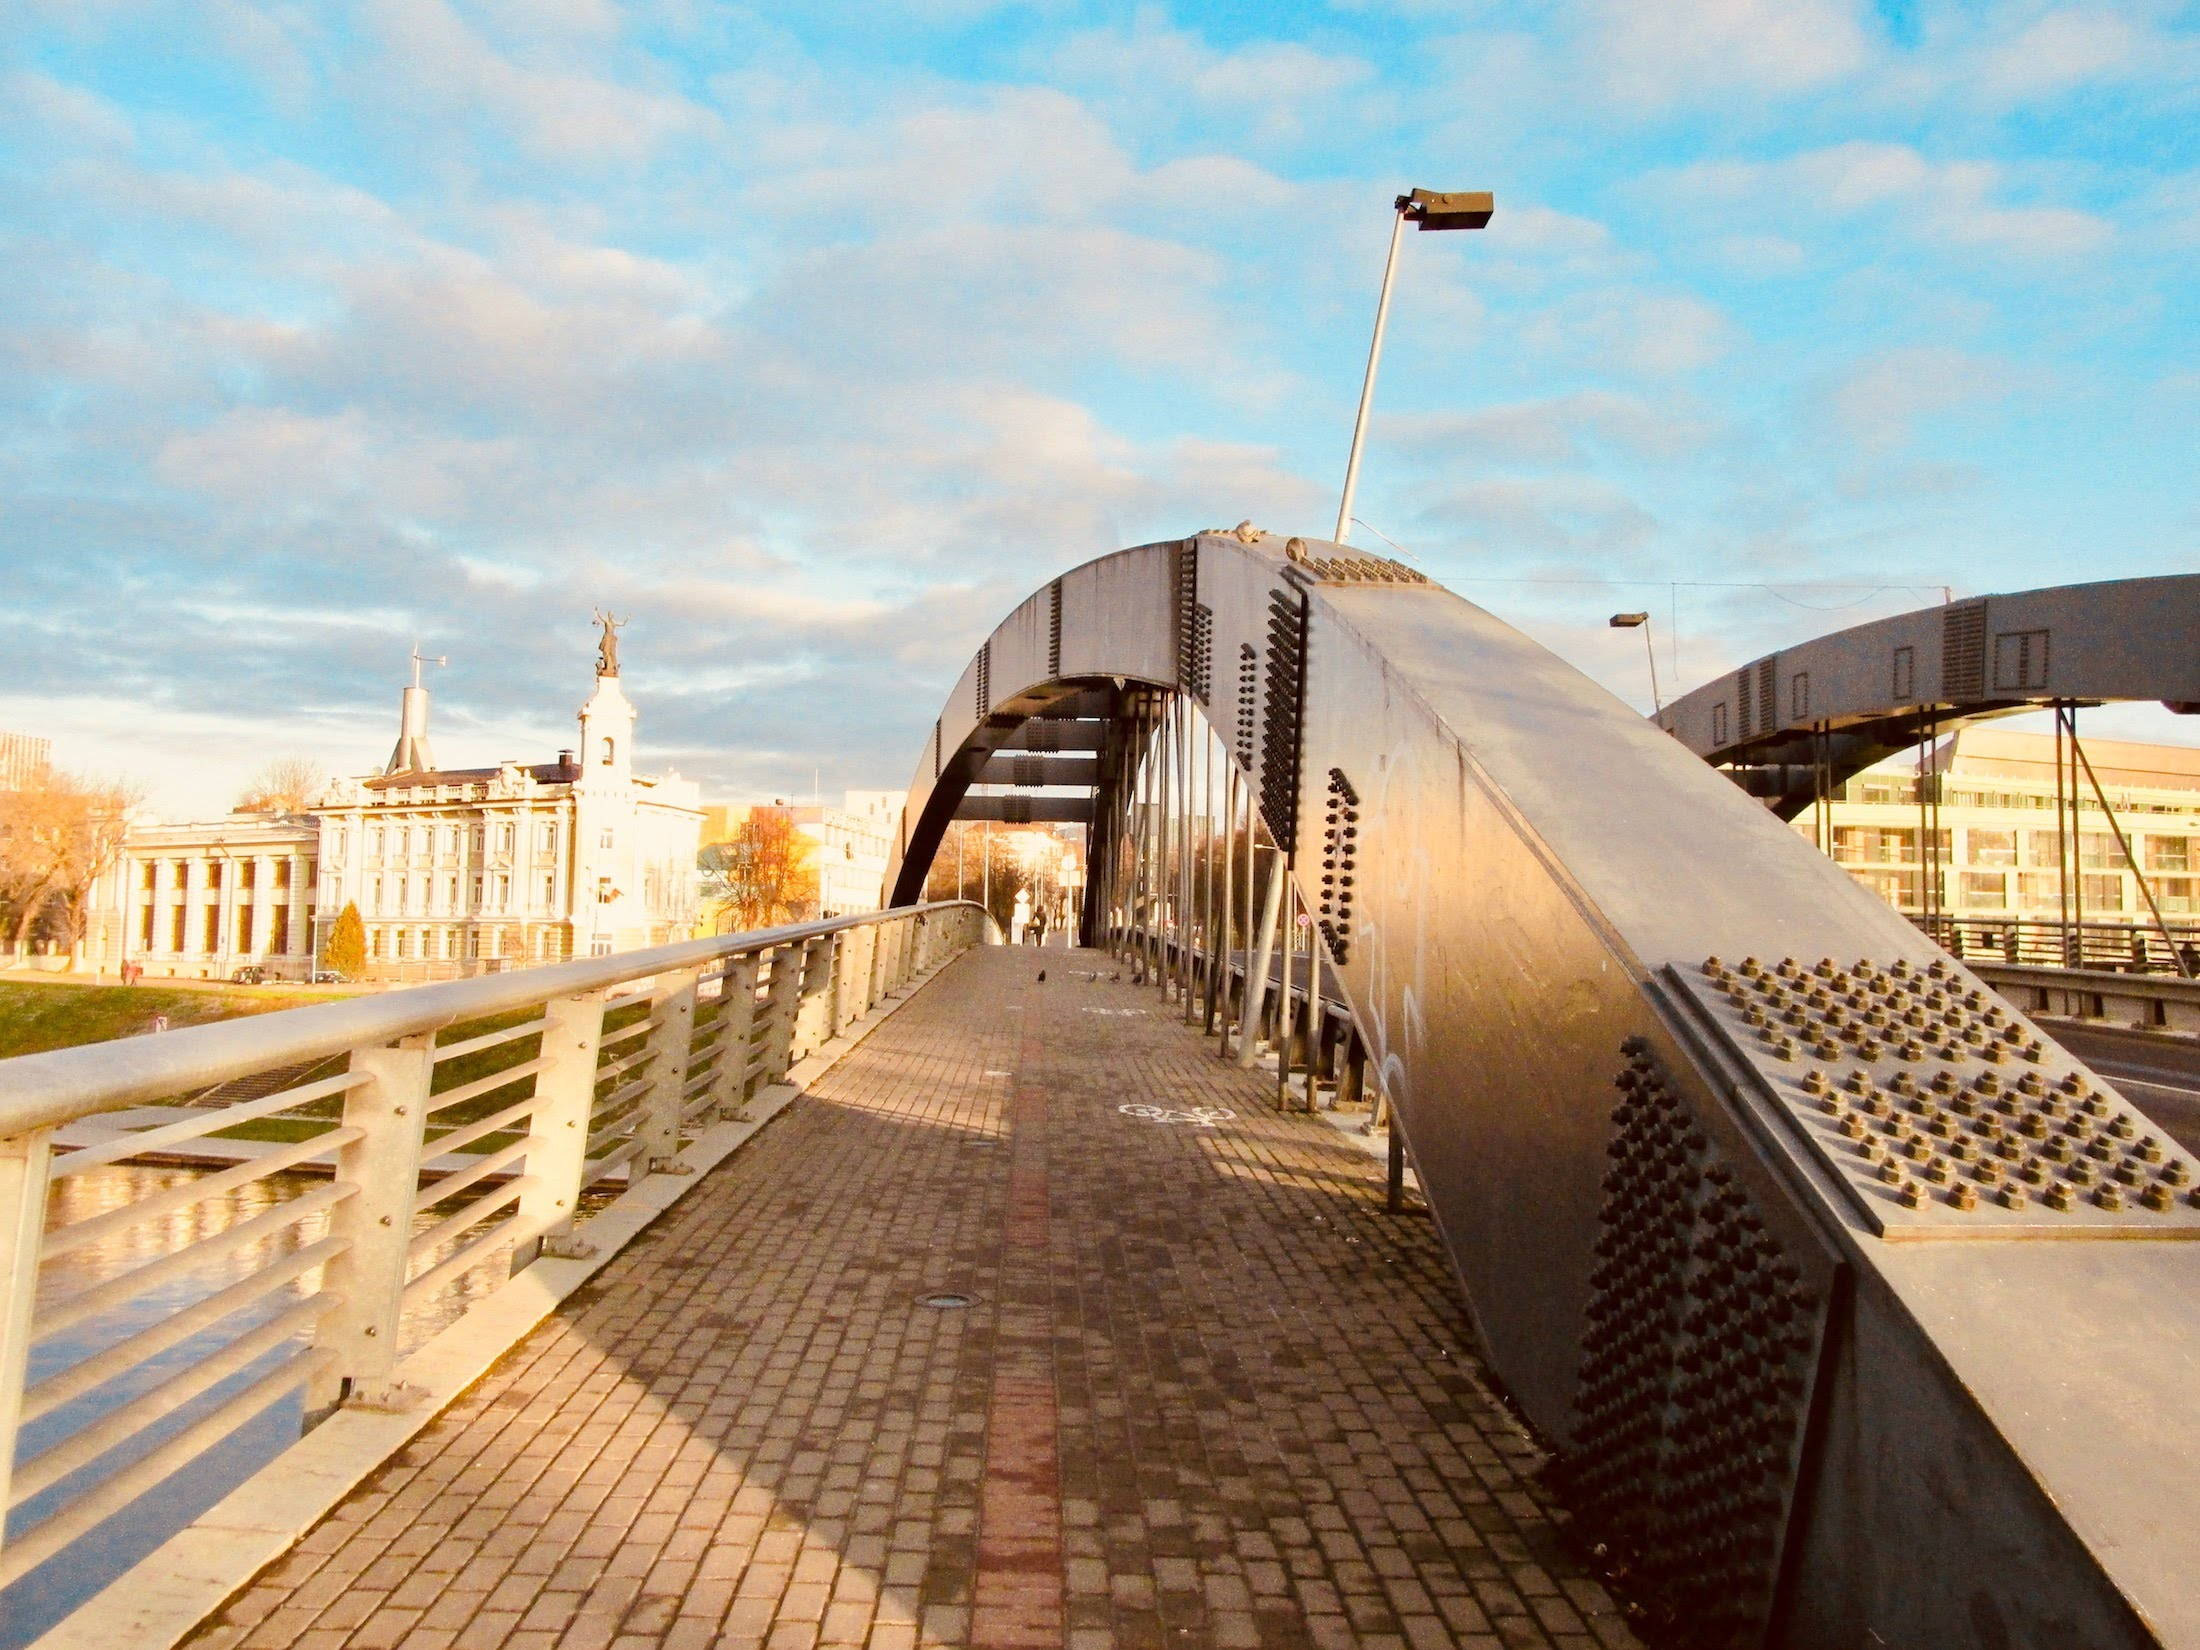 The bridge was named after Mindaugas, King of Lithuania